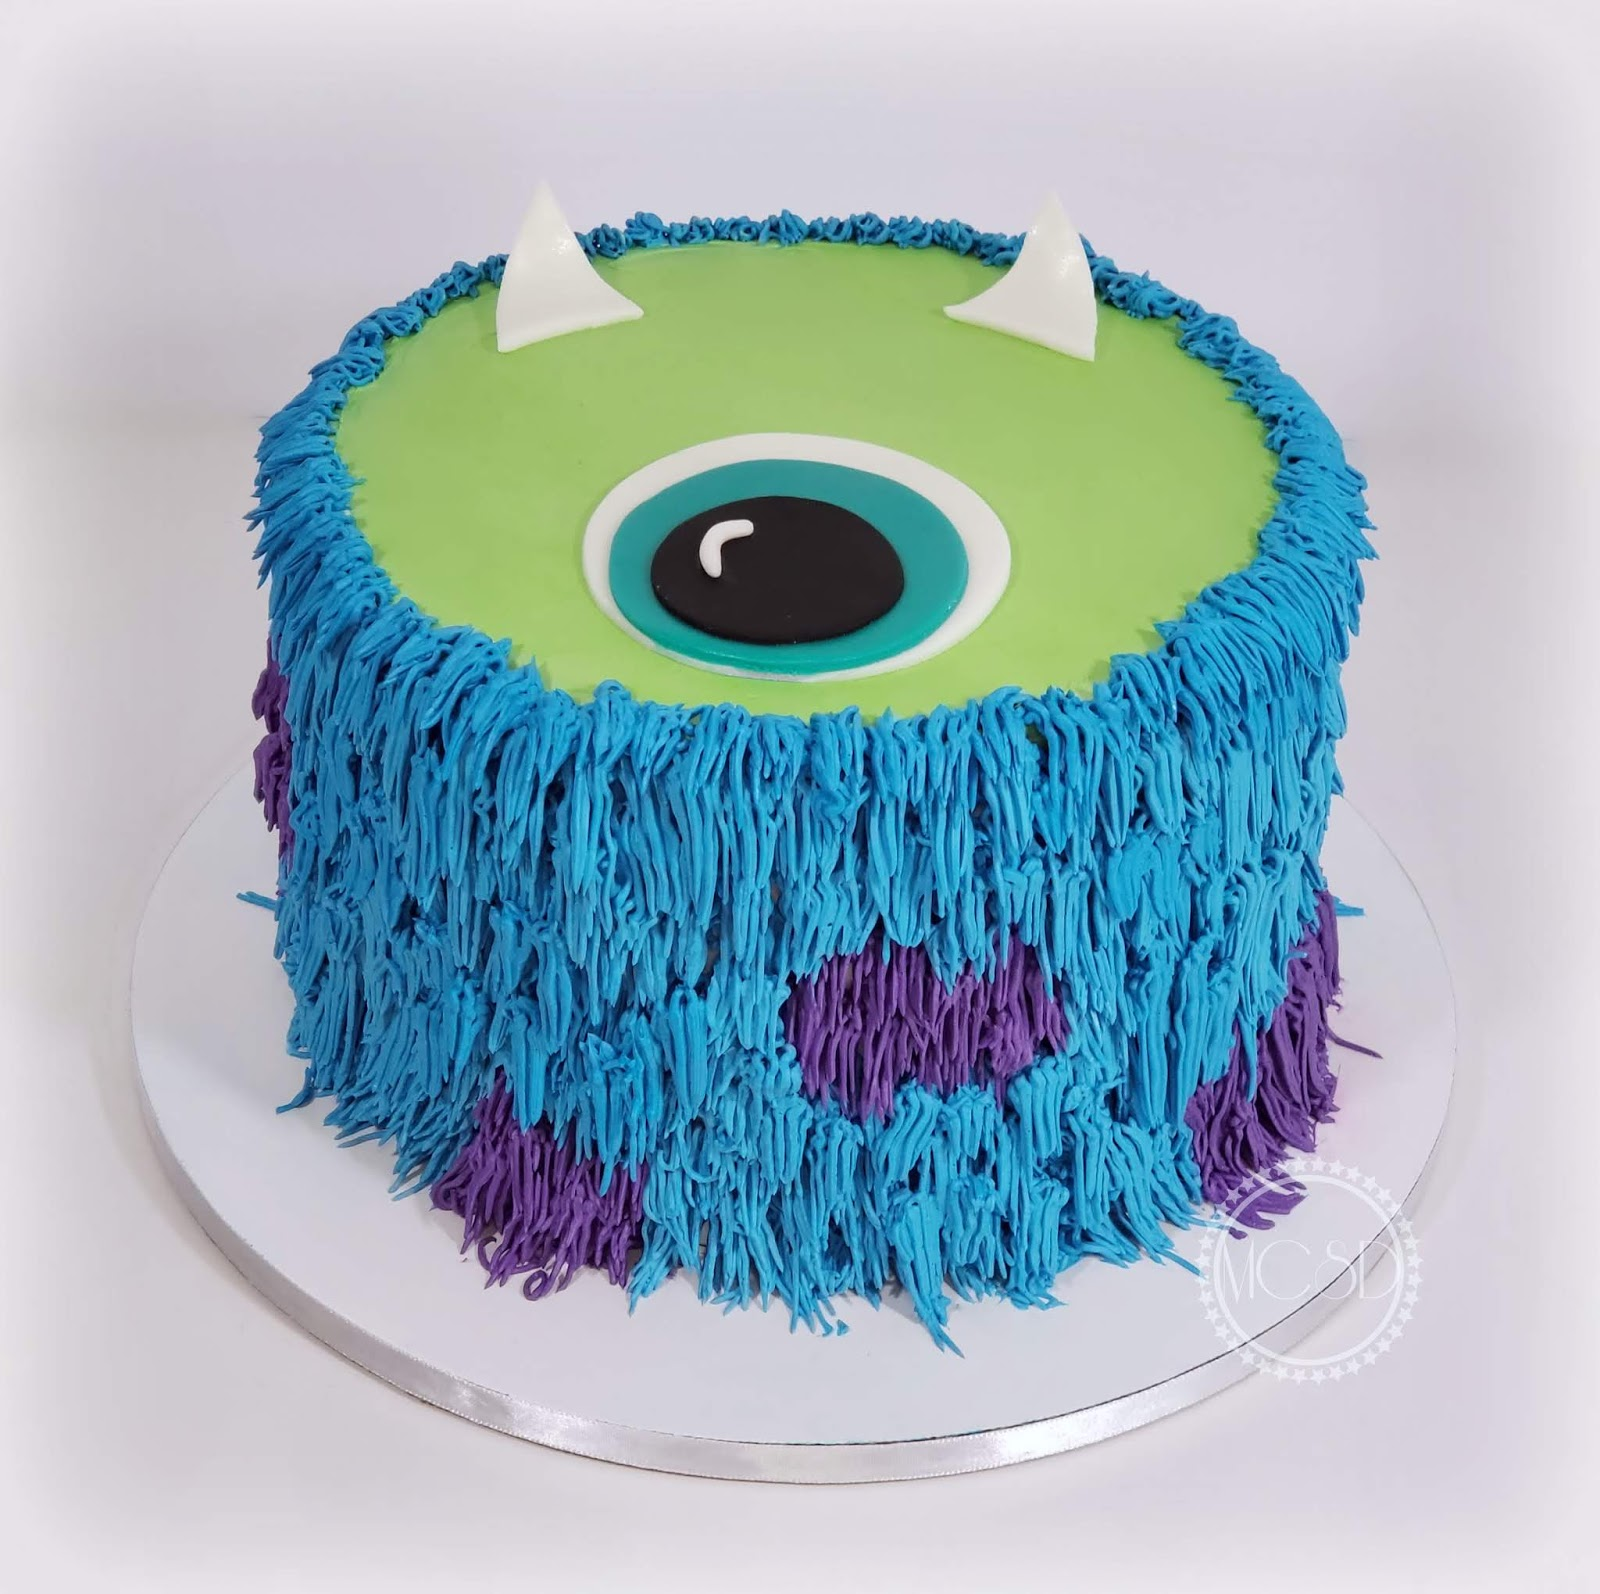 Admirable Cakesbyzana Monsters Inc Layer Cake Personalised Birthday Cards Veneteletsinfo